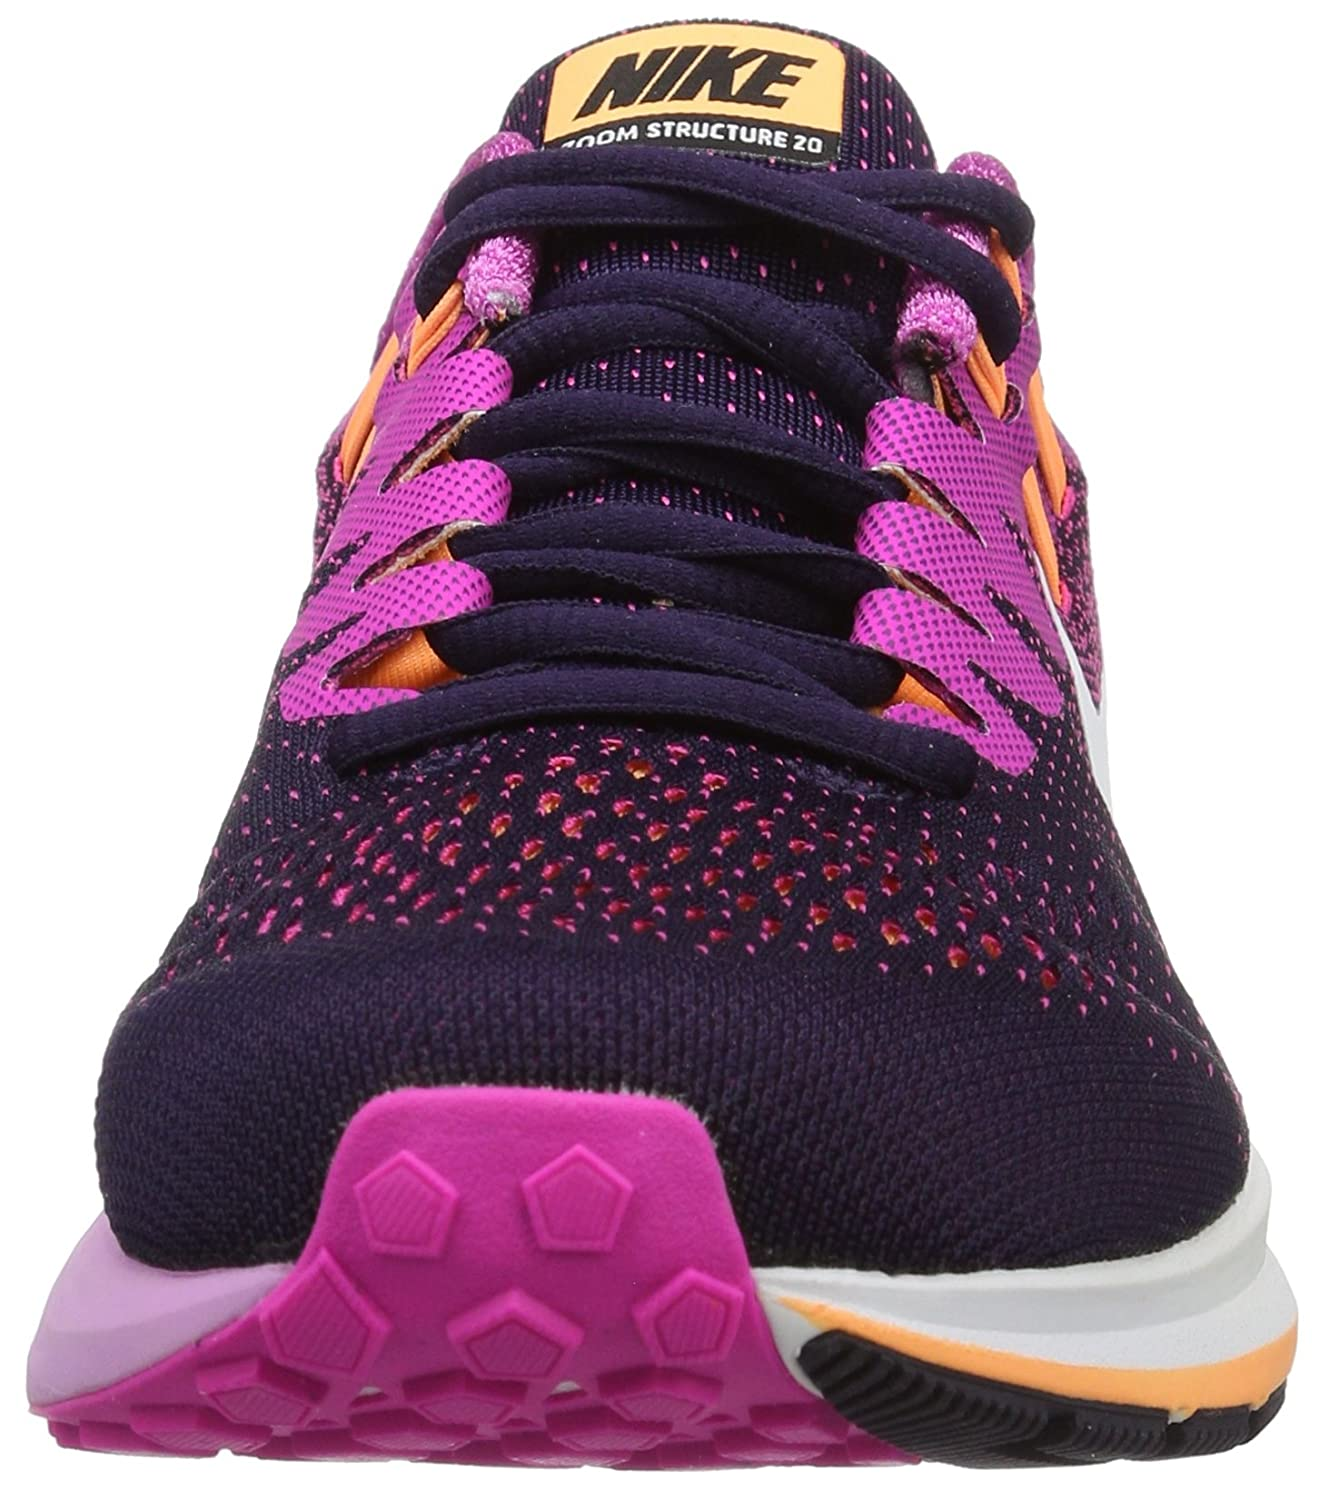 4c3a7340fc8 Nike Women s WMNS Air Zoom Structure 20 Running Shoes  Amazon.co.uk  Shoes    Bags